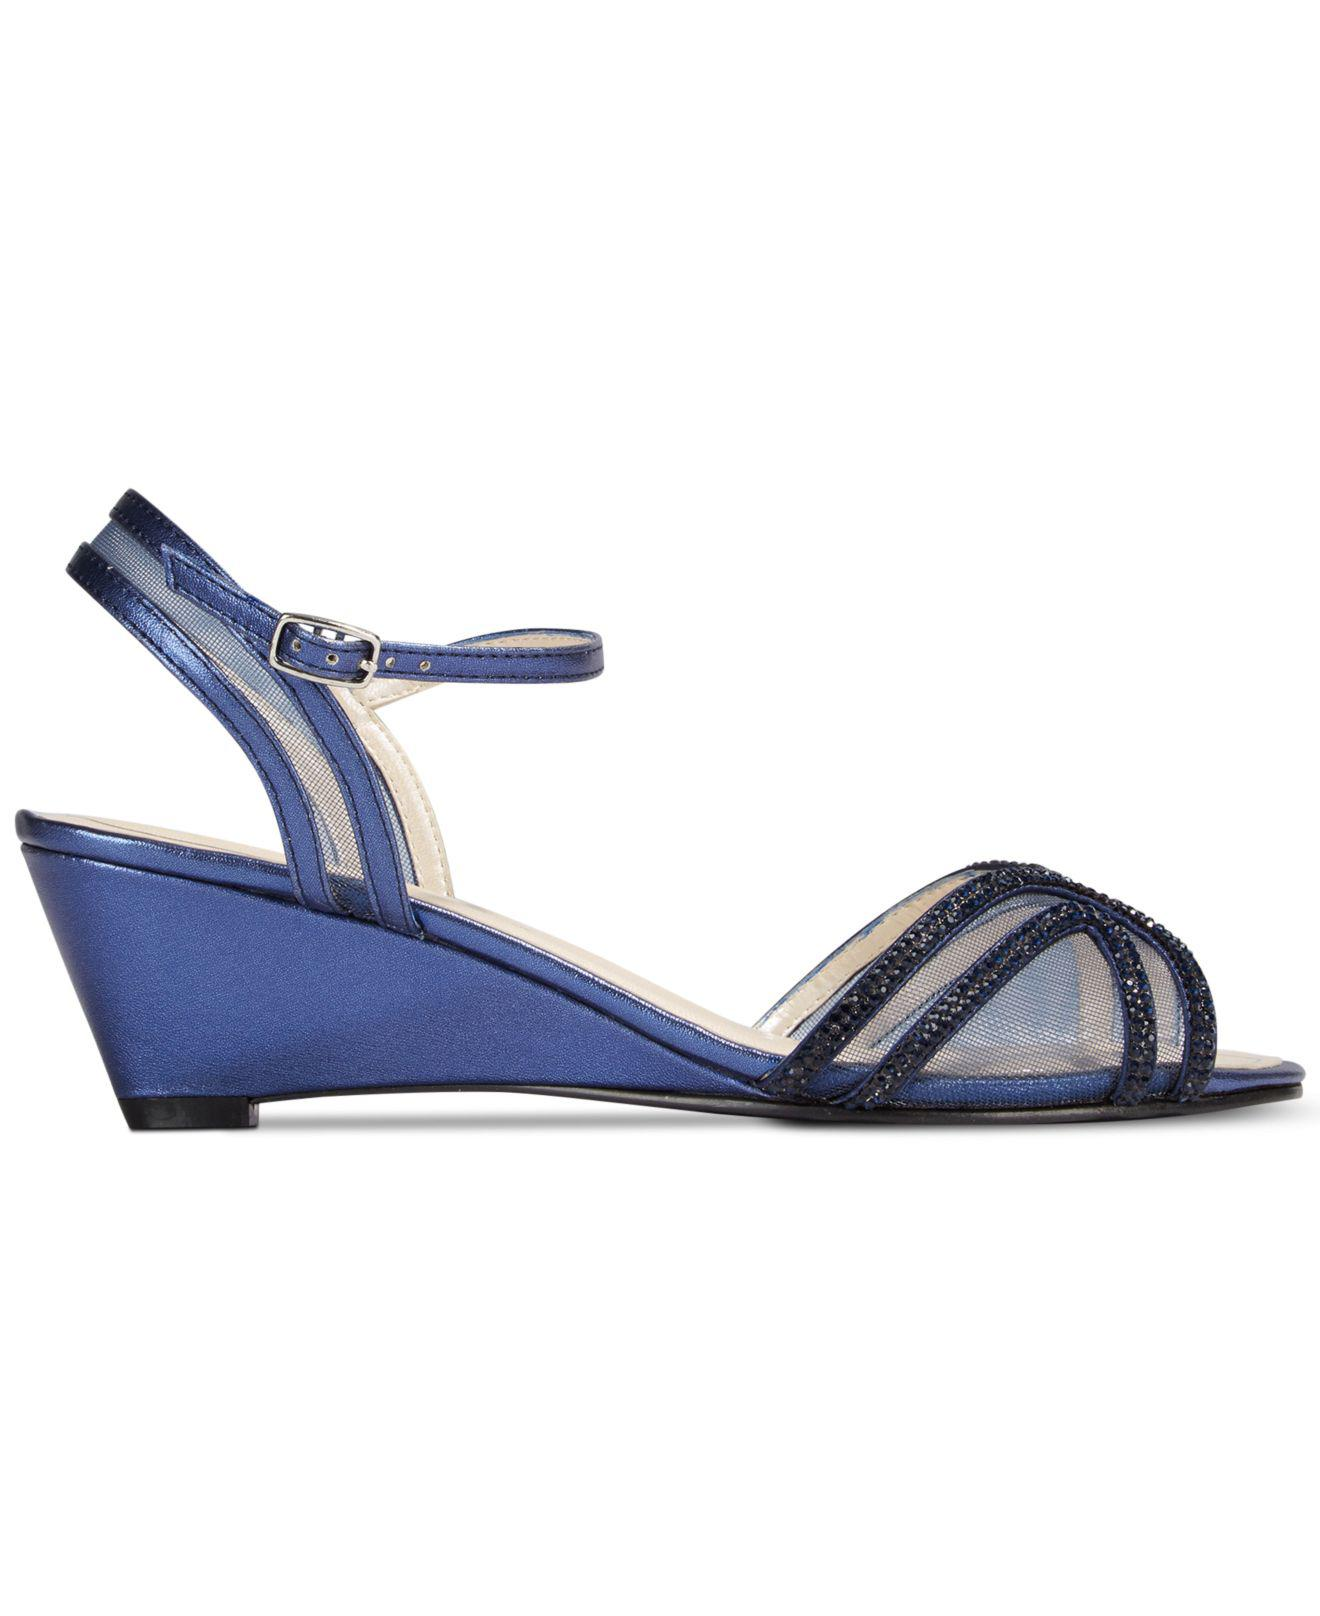 d9e65c32d11 Lyst - Caparros Hilton Strappy Evening Wedge Sandals in Blue